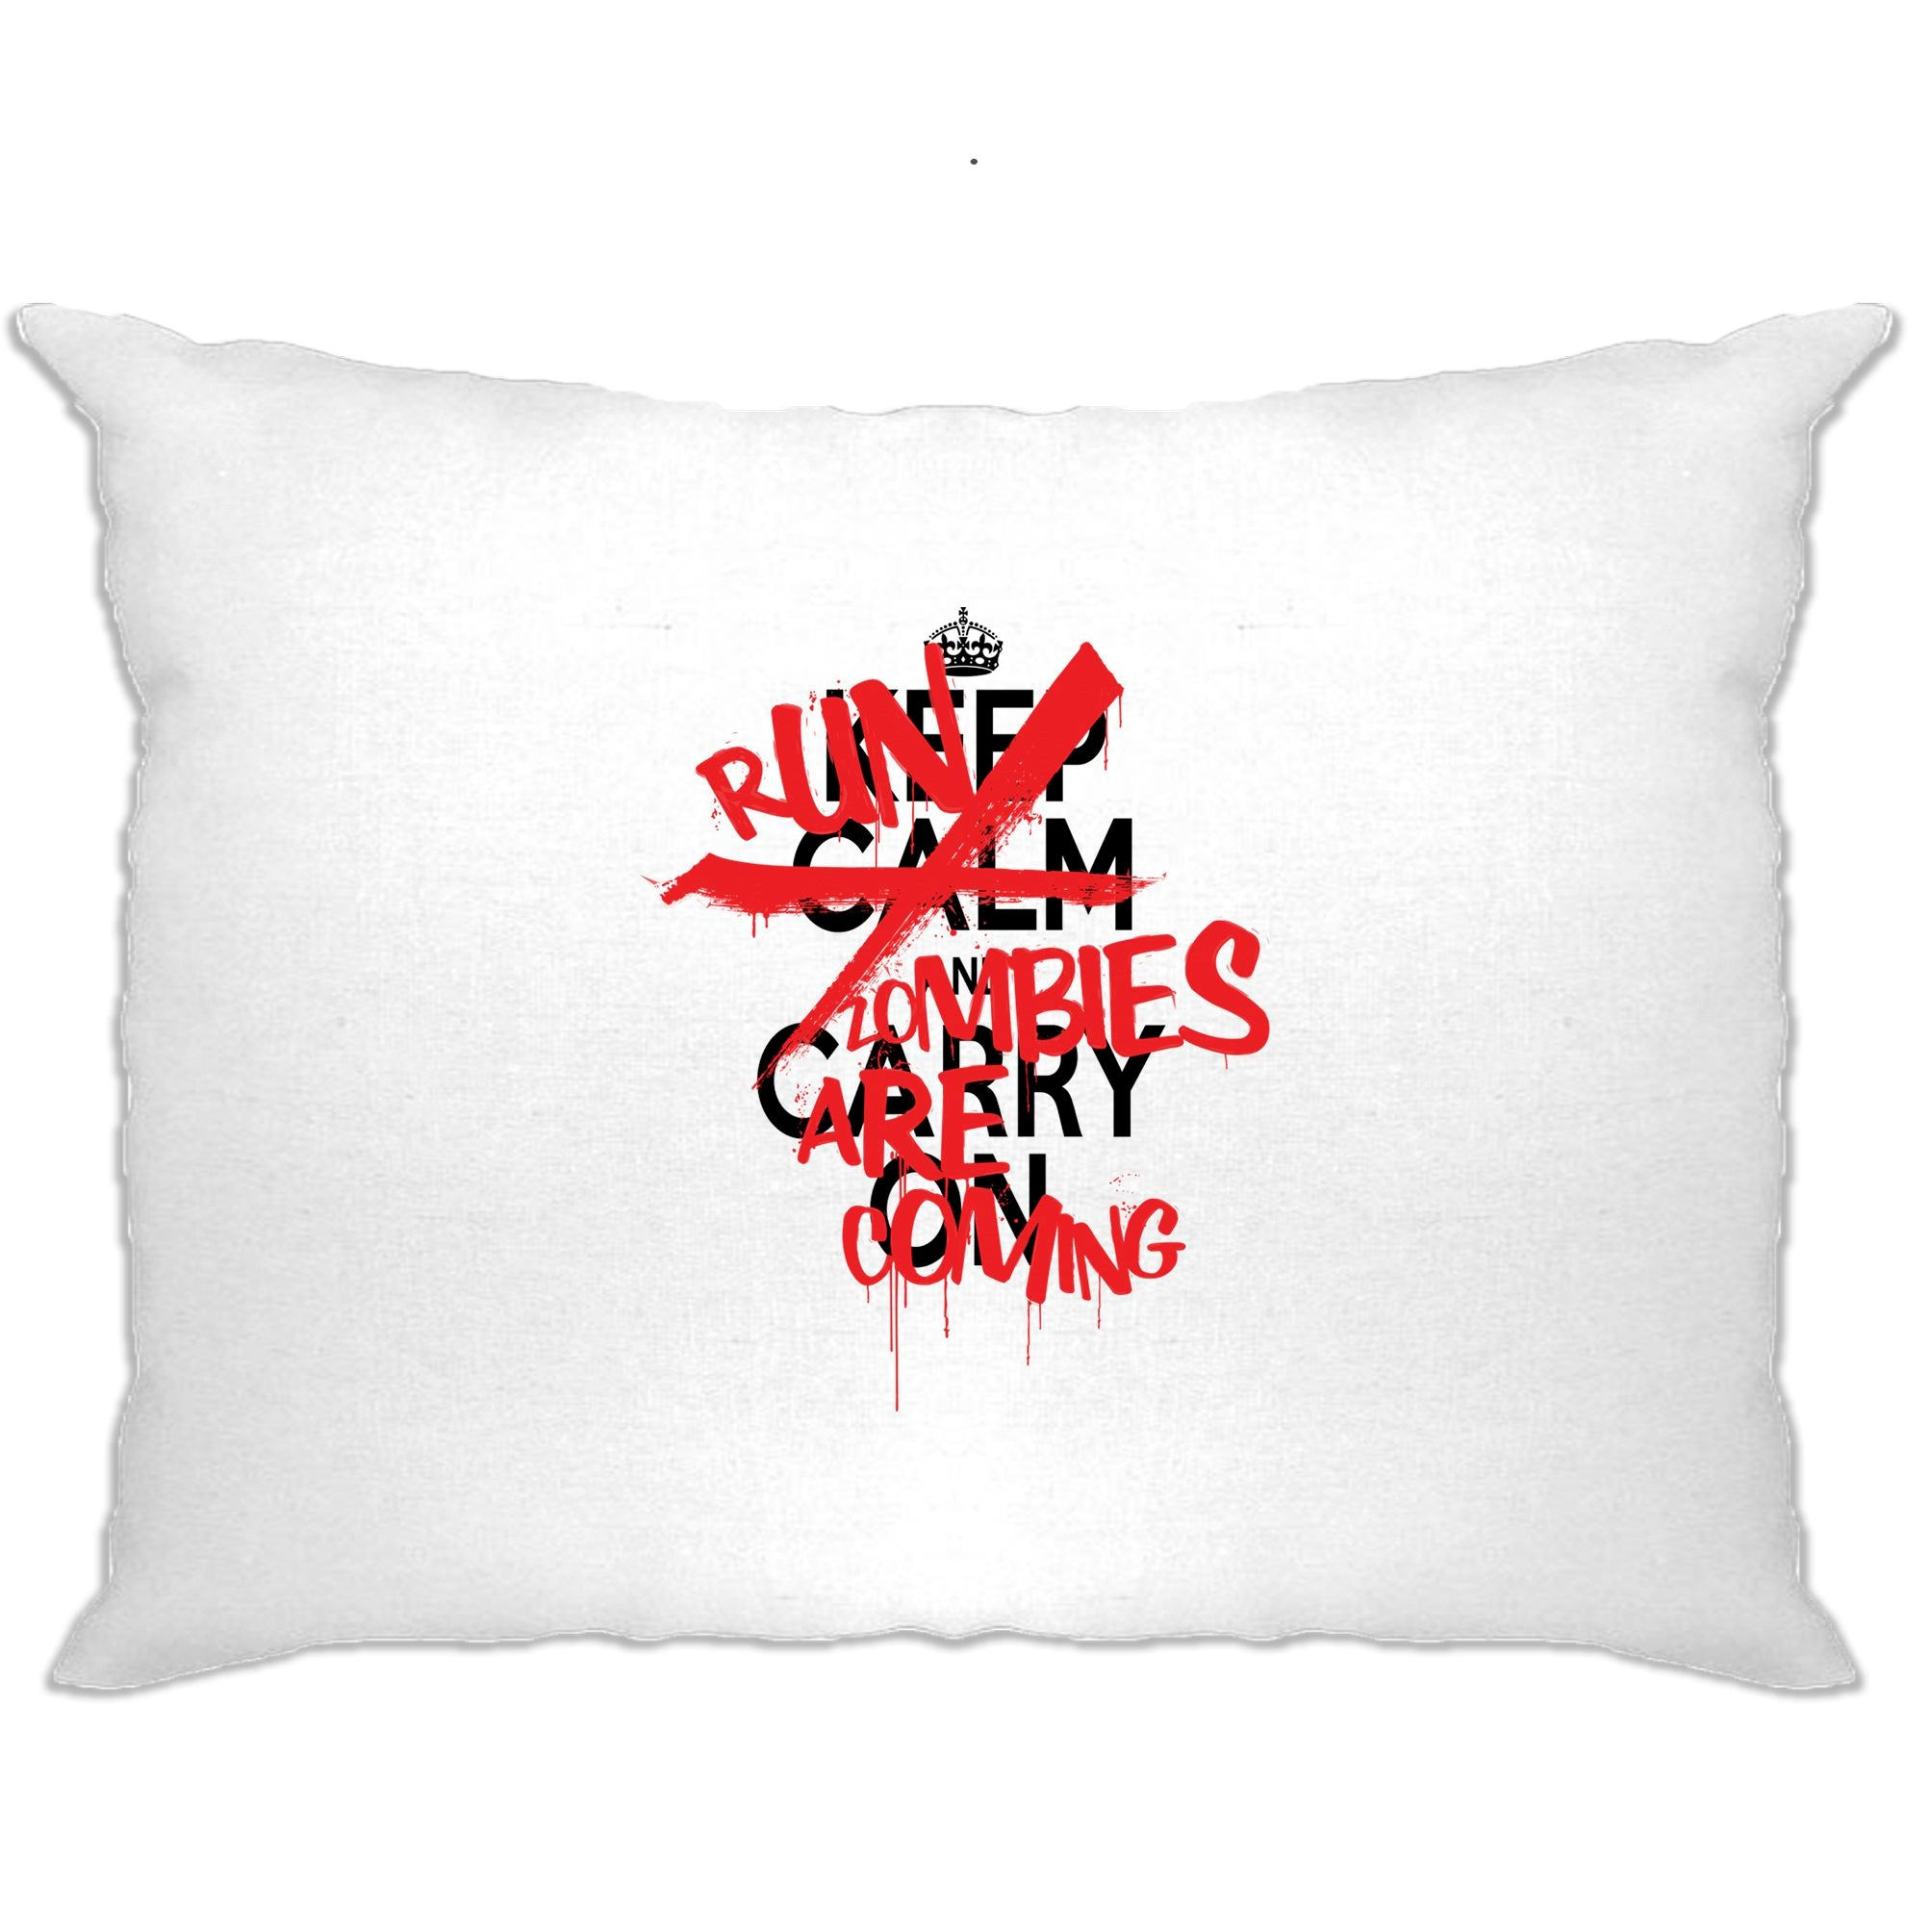 Keep Calm & Carry On | Run, Zombies Are Coming Pillow Case